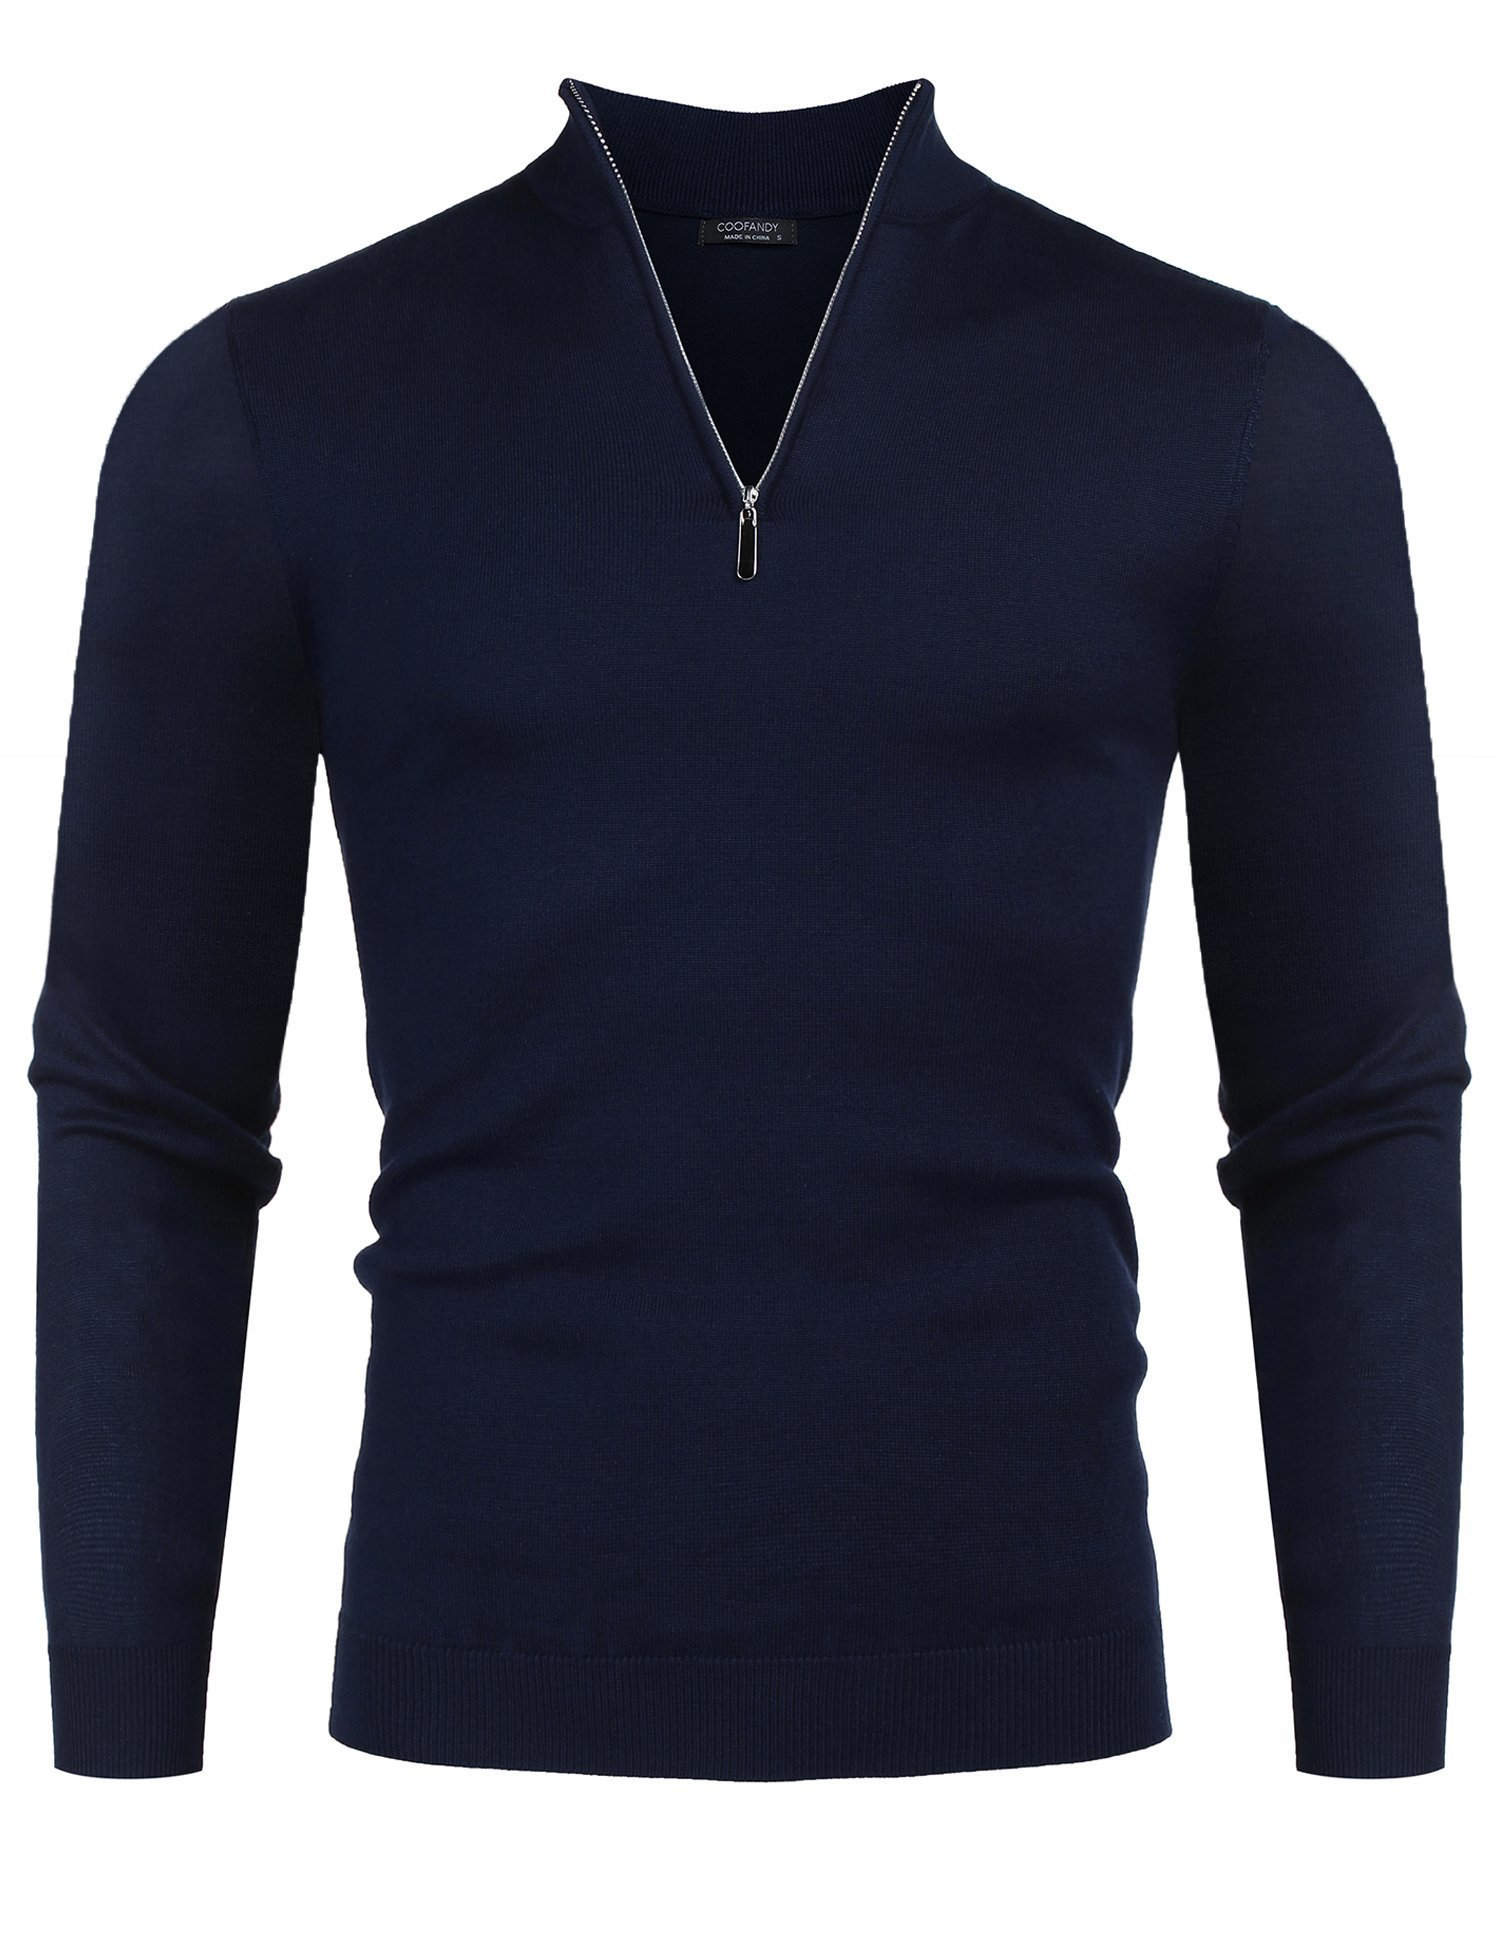 COOFANDY Men's Slim Fit Zip up Mock Neck Polo Sweater Casual Long Sleeve Pullover Sweaters with Ribbing Edge,Navy Blue,Small